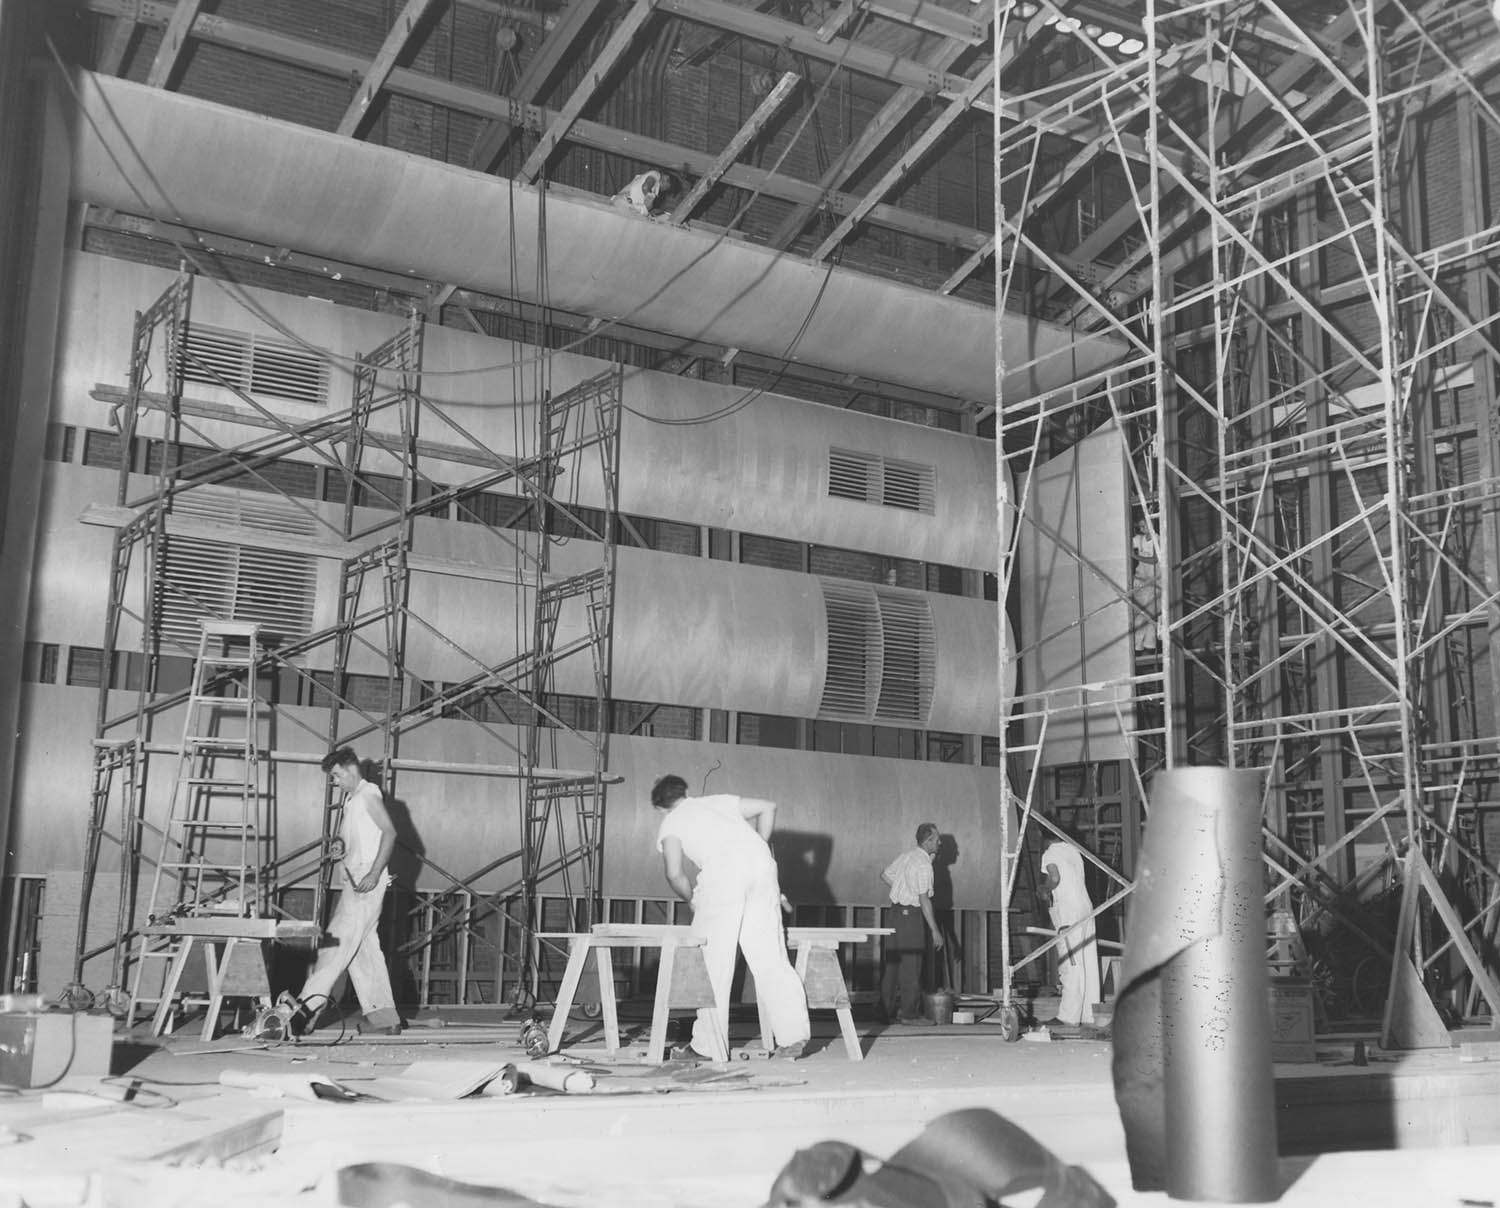 Construction workers on Severance Hall stage during 1958 renovations. Unknown photographer, 1958.